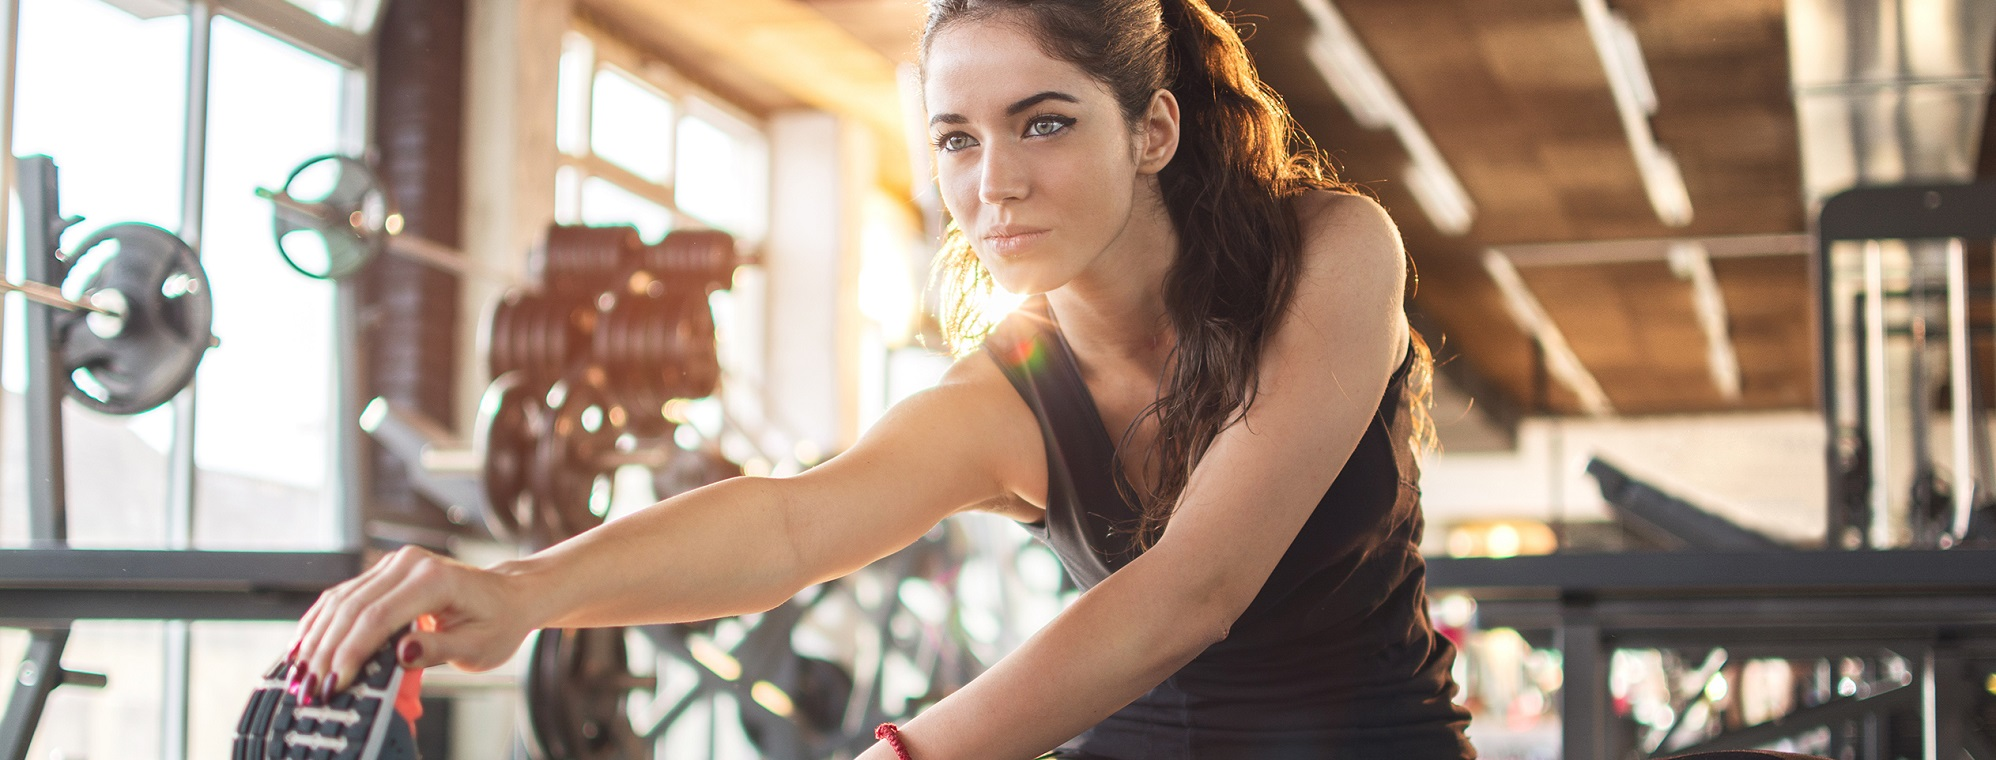 What to eat after exercise - nutrition for a beautiful body